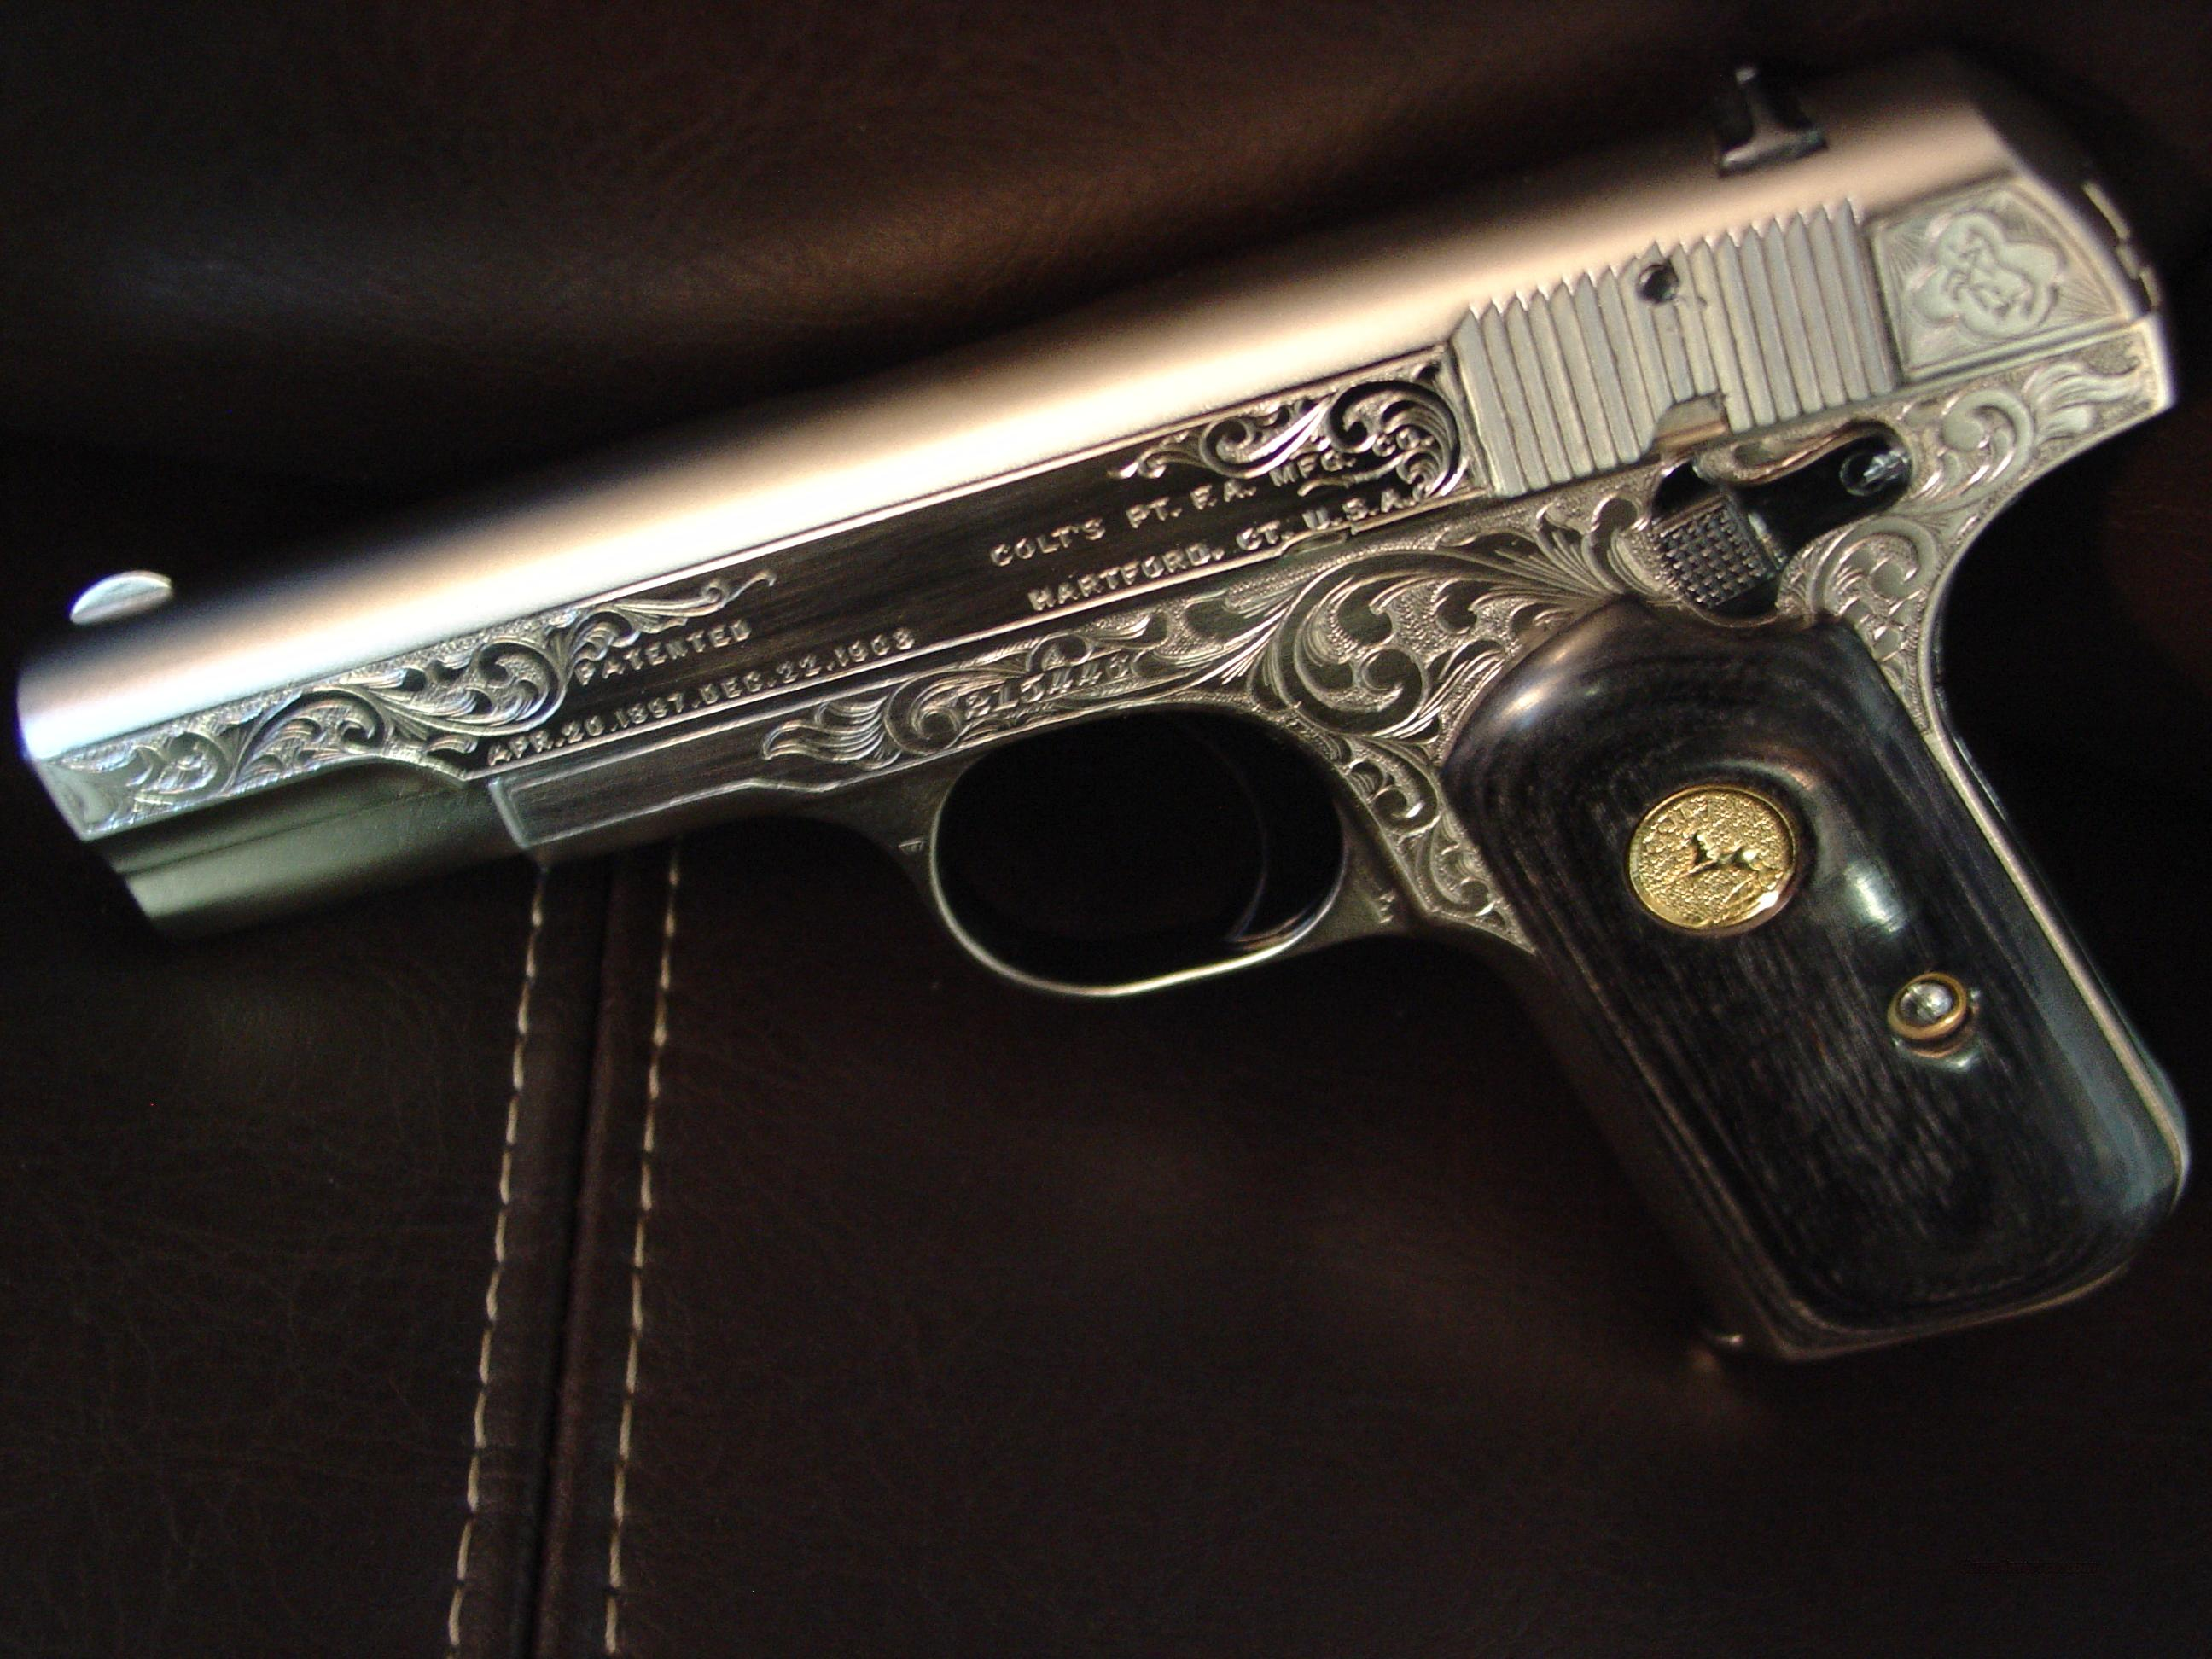 Colt 1903 Hammerless,32 auto,fully refinished in a satin nickel,& deep hand engraved by master engraver S.Leis with certificate,& custom grips,high gloss blued accents, made in 1916-a one of a kind showpiece !!  Guns > Pistols > Colt Automatic Pistols (.25, .32, & .380 cal)